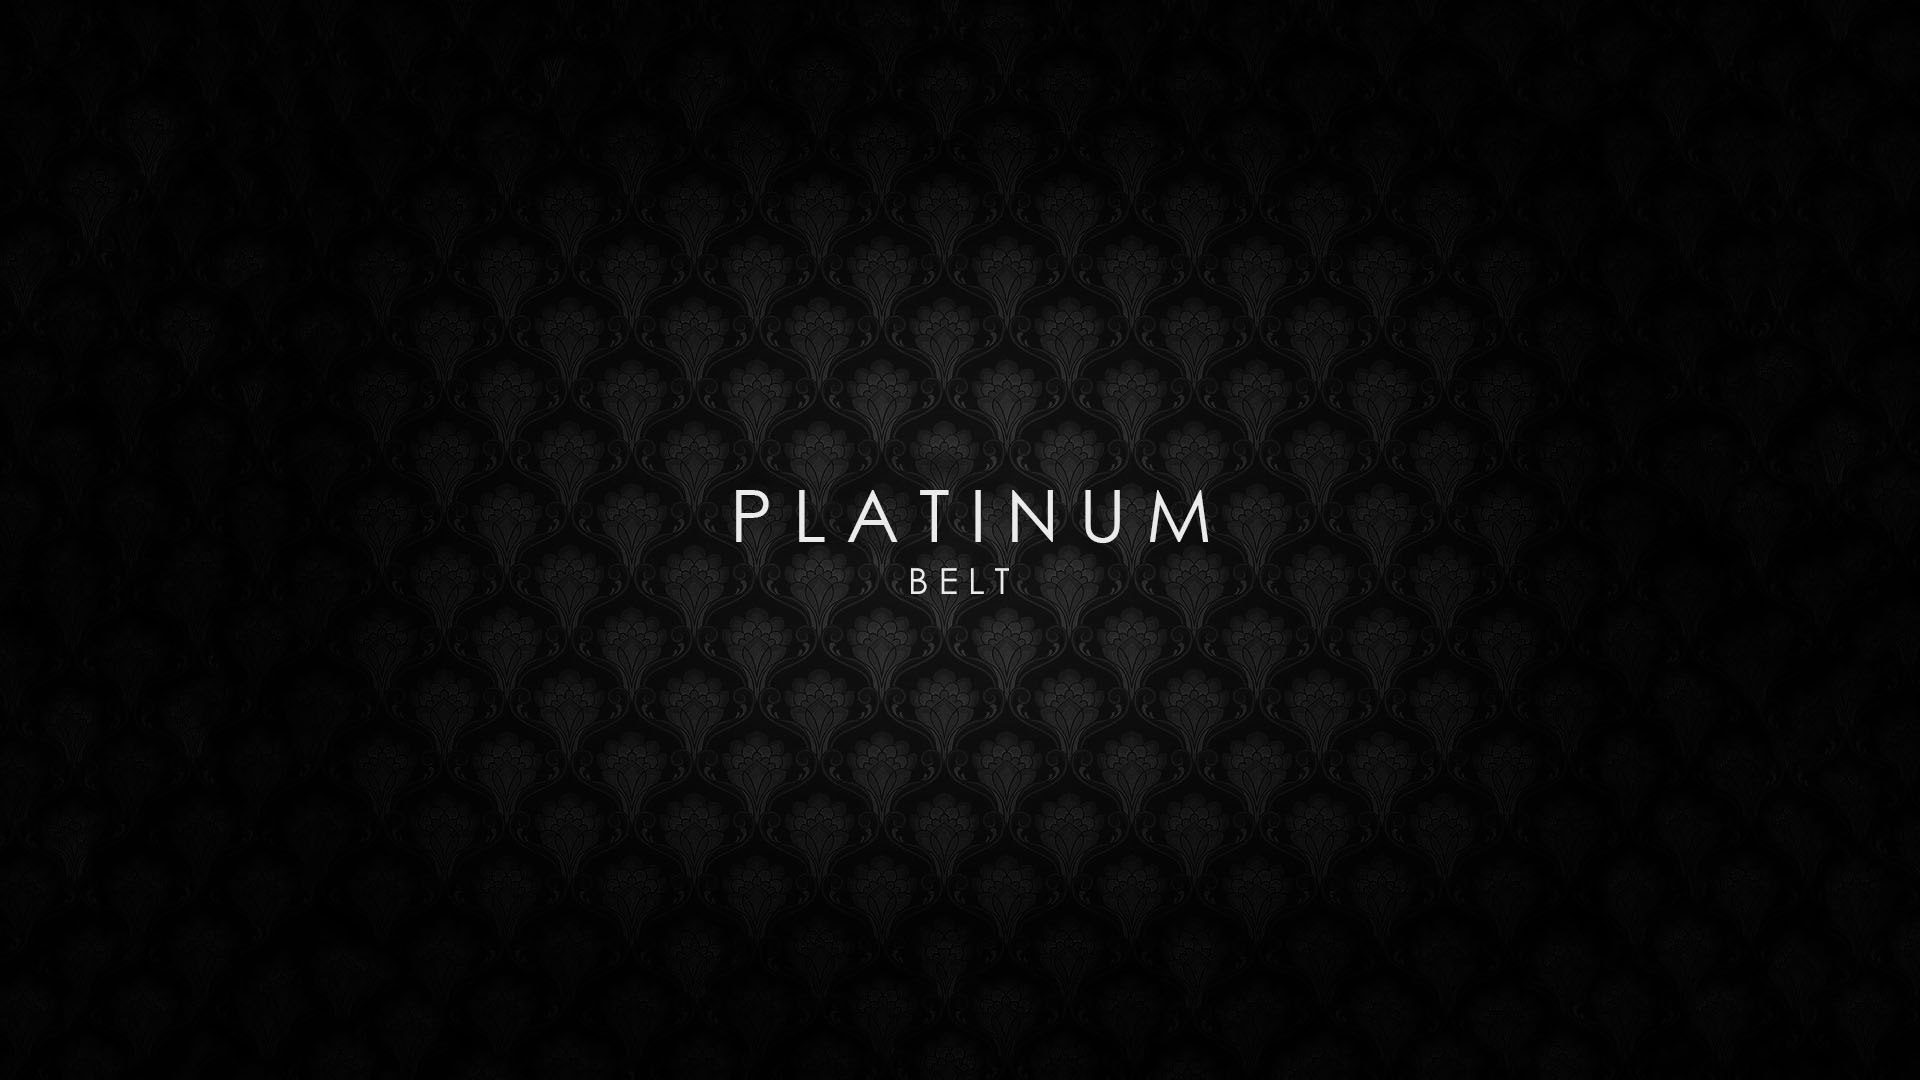 platinum belt Ivan Real Estate Concept – Platinum Belt PLATINUM BELT